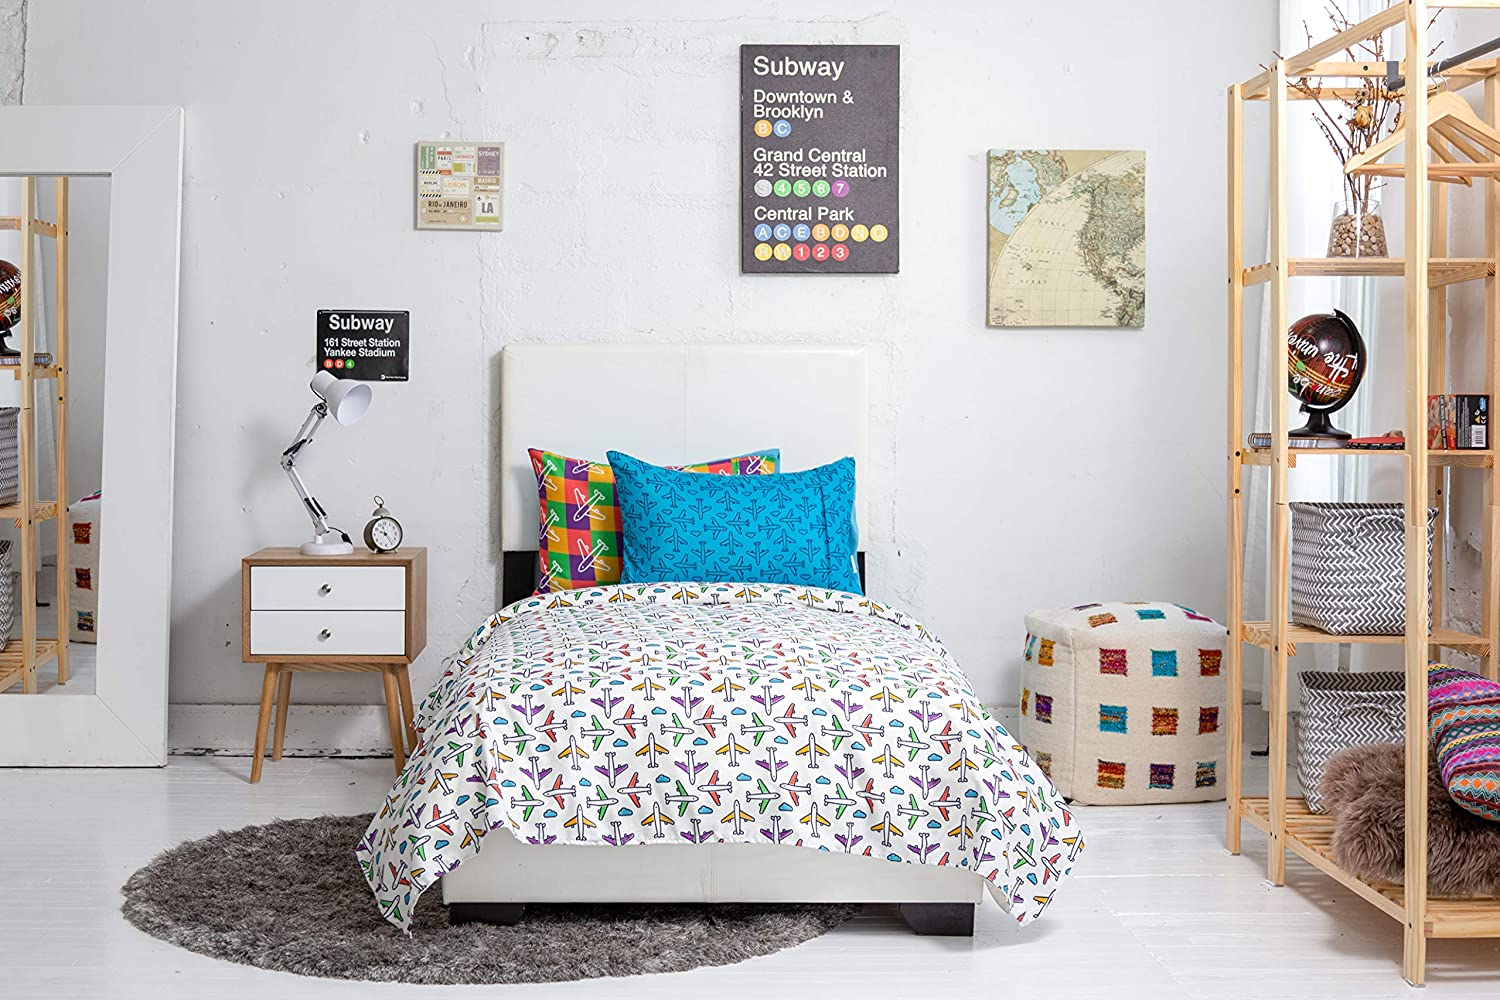 Chital 4Pc Full Linen Sheet Set Super Soft Microfiber- Fits Bed Size: 54 x 75 x 15 Inches Deep Cute Airplane Print Flat /& Fitted Sheets with 2 Pillowcases for Kids Girl Boy /& Adult